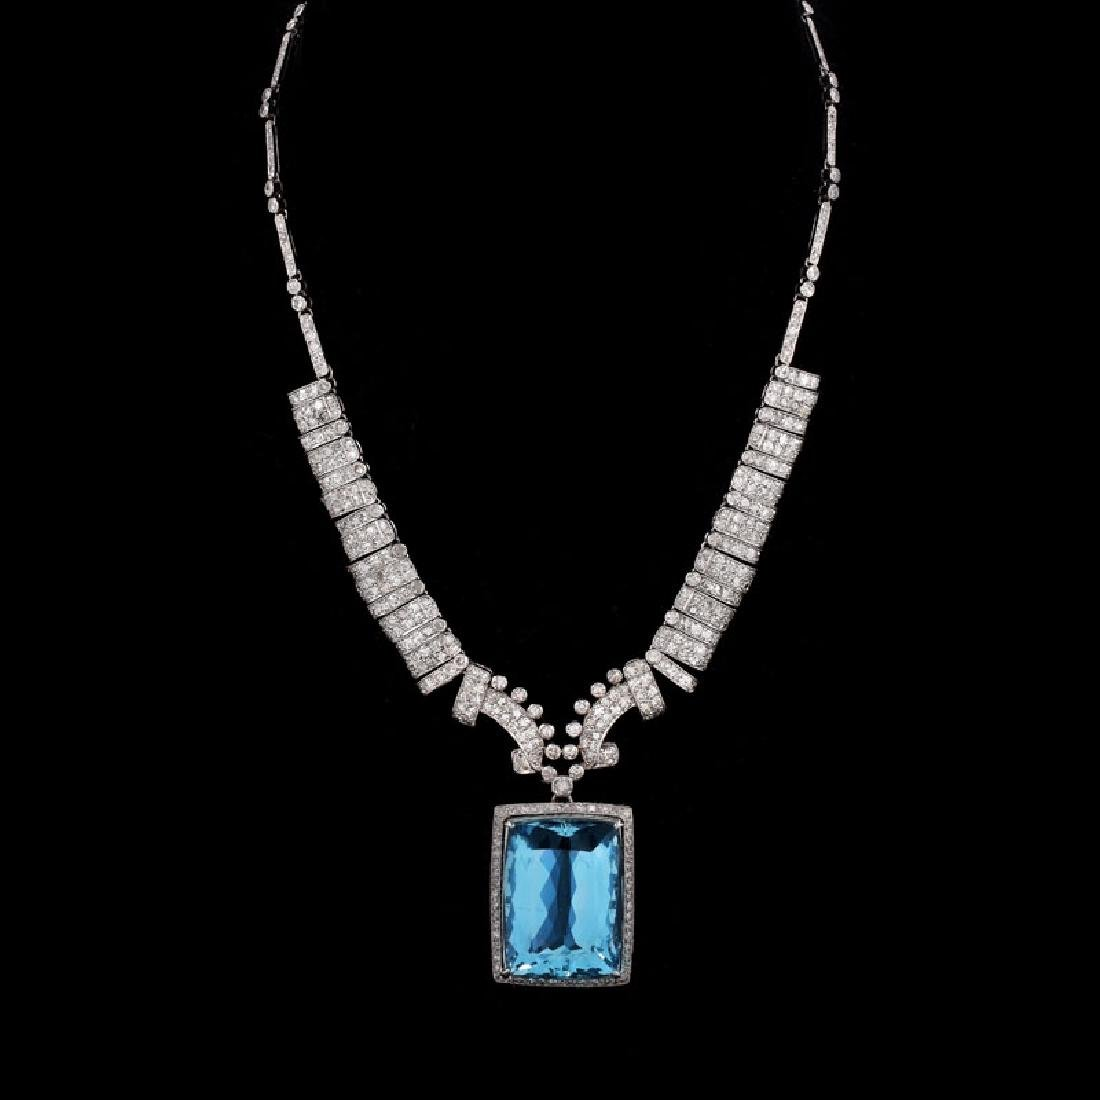 Art Deco Large Aquamarine, Diamond and Platinum Pendant